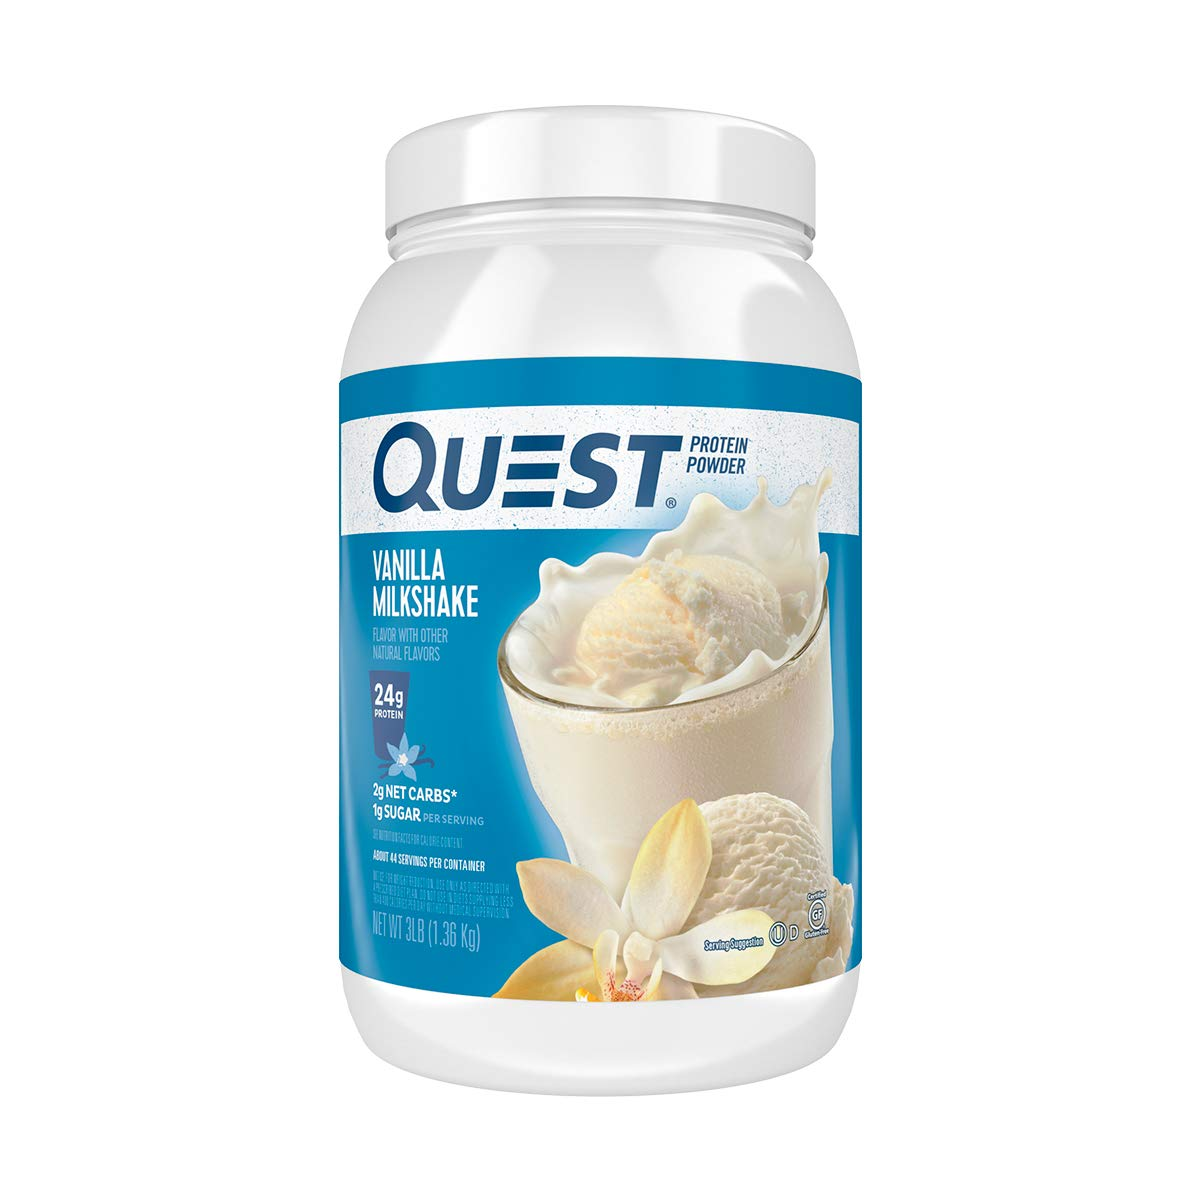 Quest Nutrition Vanilla Milkshake Protein Powder,  High Protein, Low Carb, Gluten Free, Soy Free, 3 Pound by Quest Nutrition